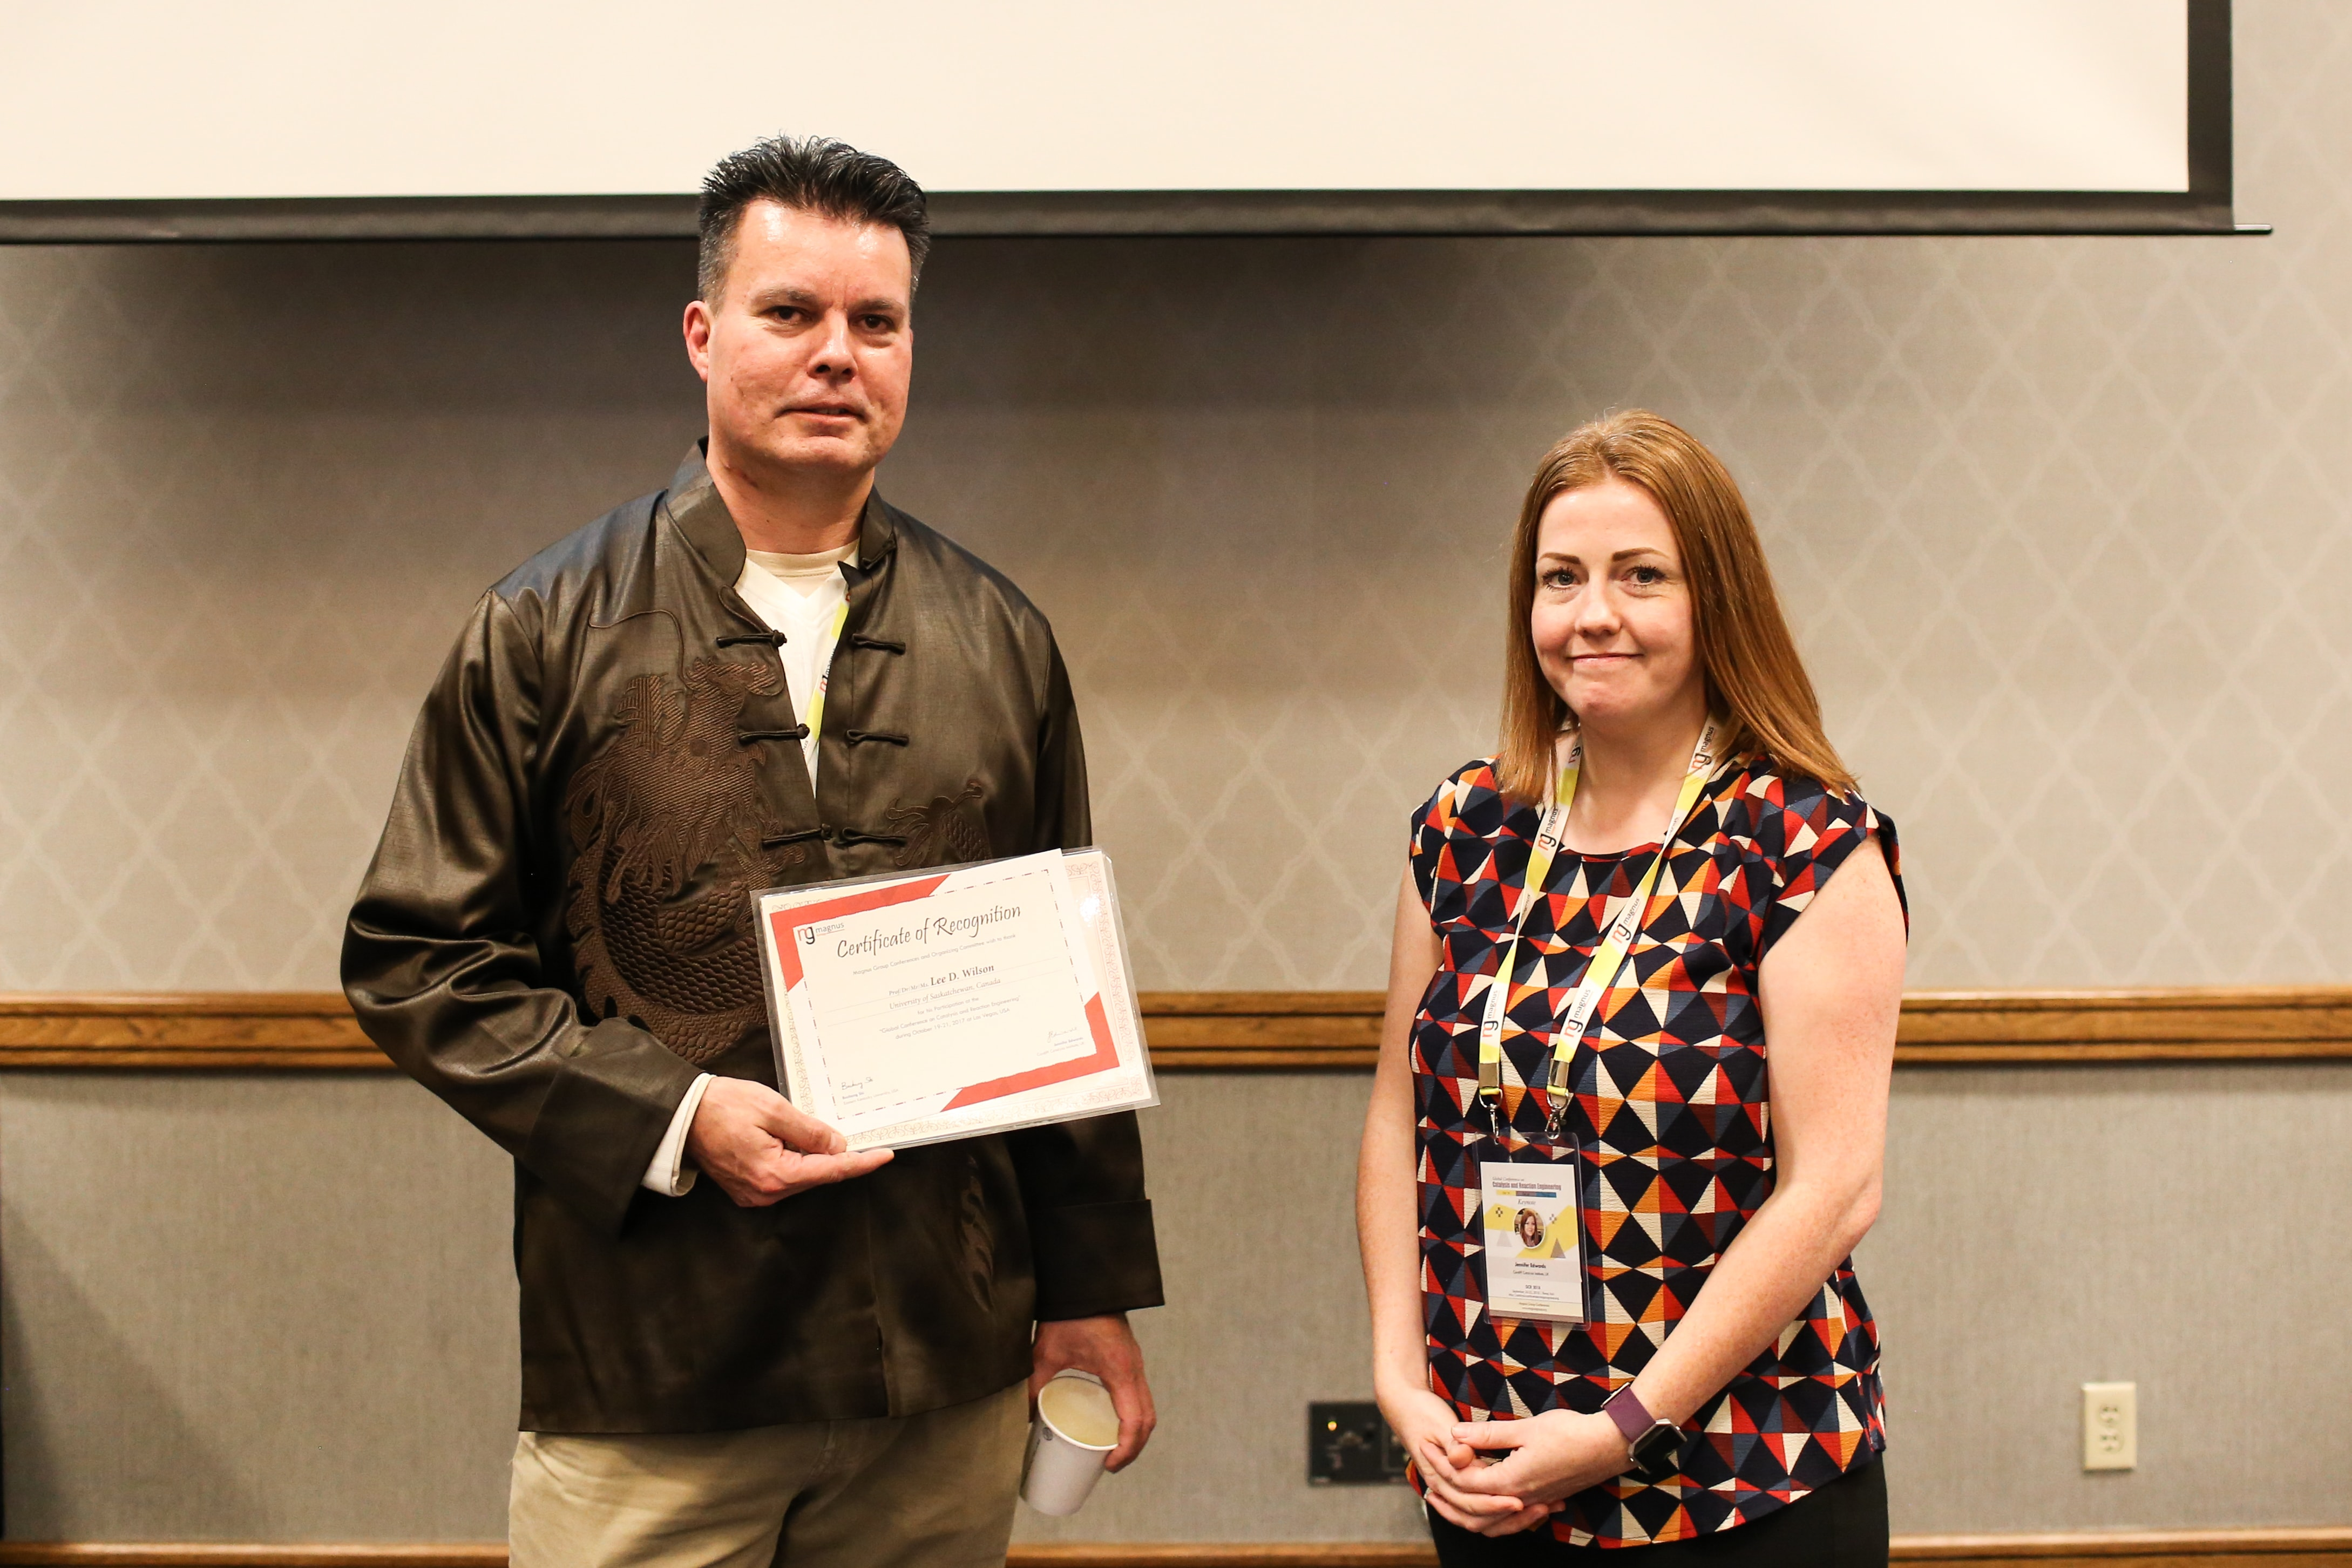 Lee D. Wilson felicitated by Jennifer Edwards